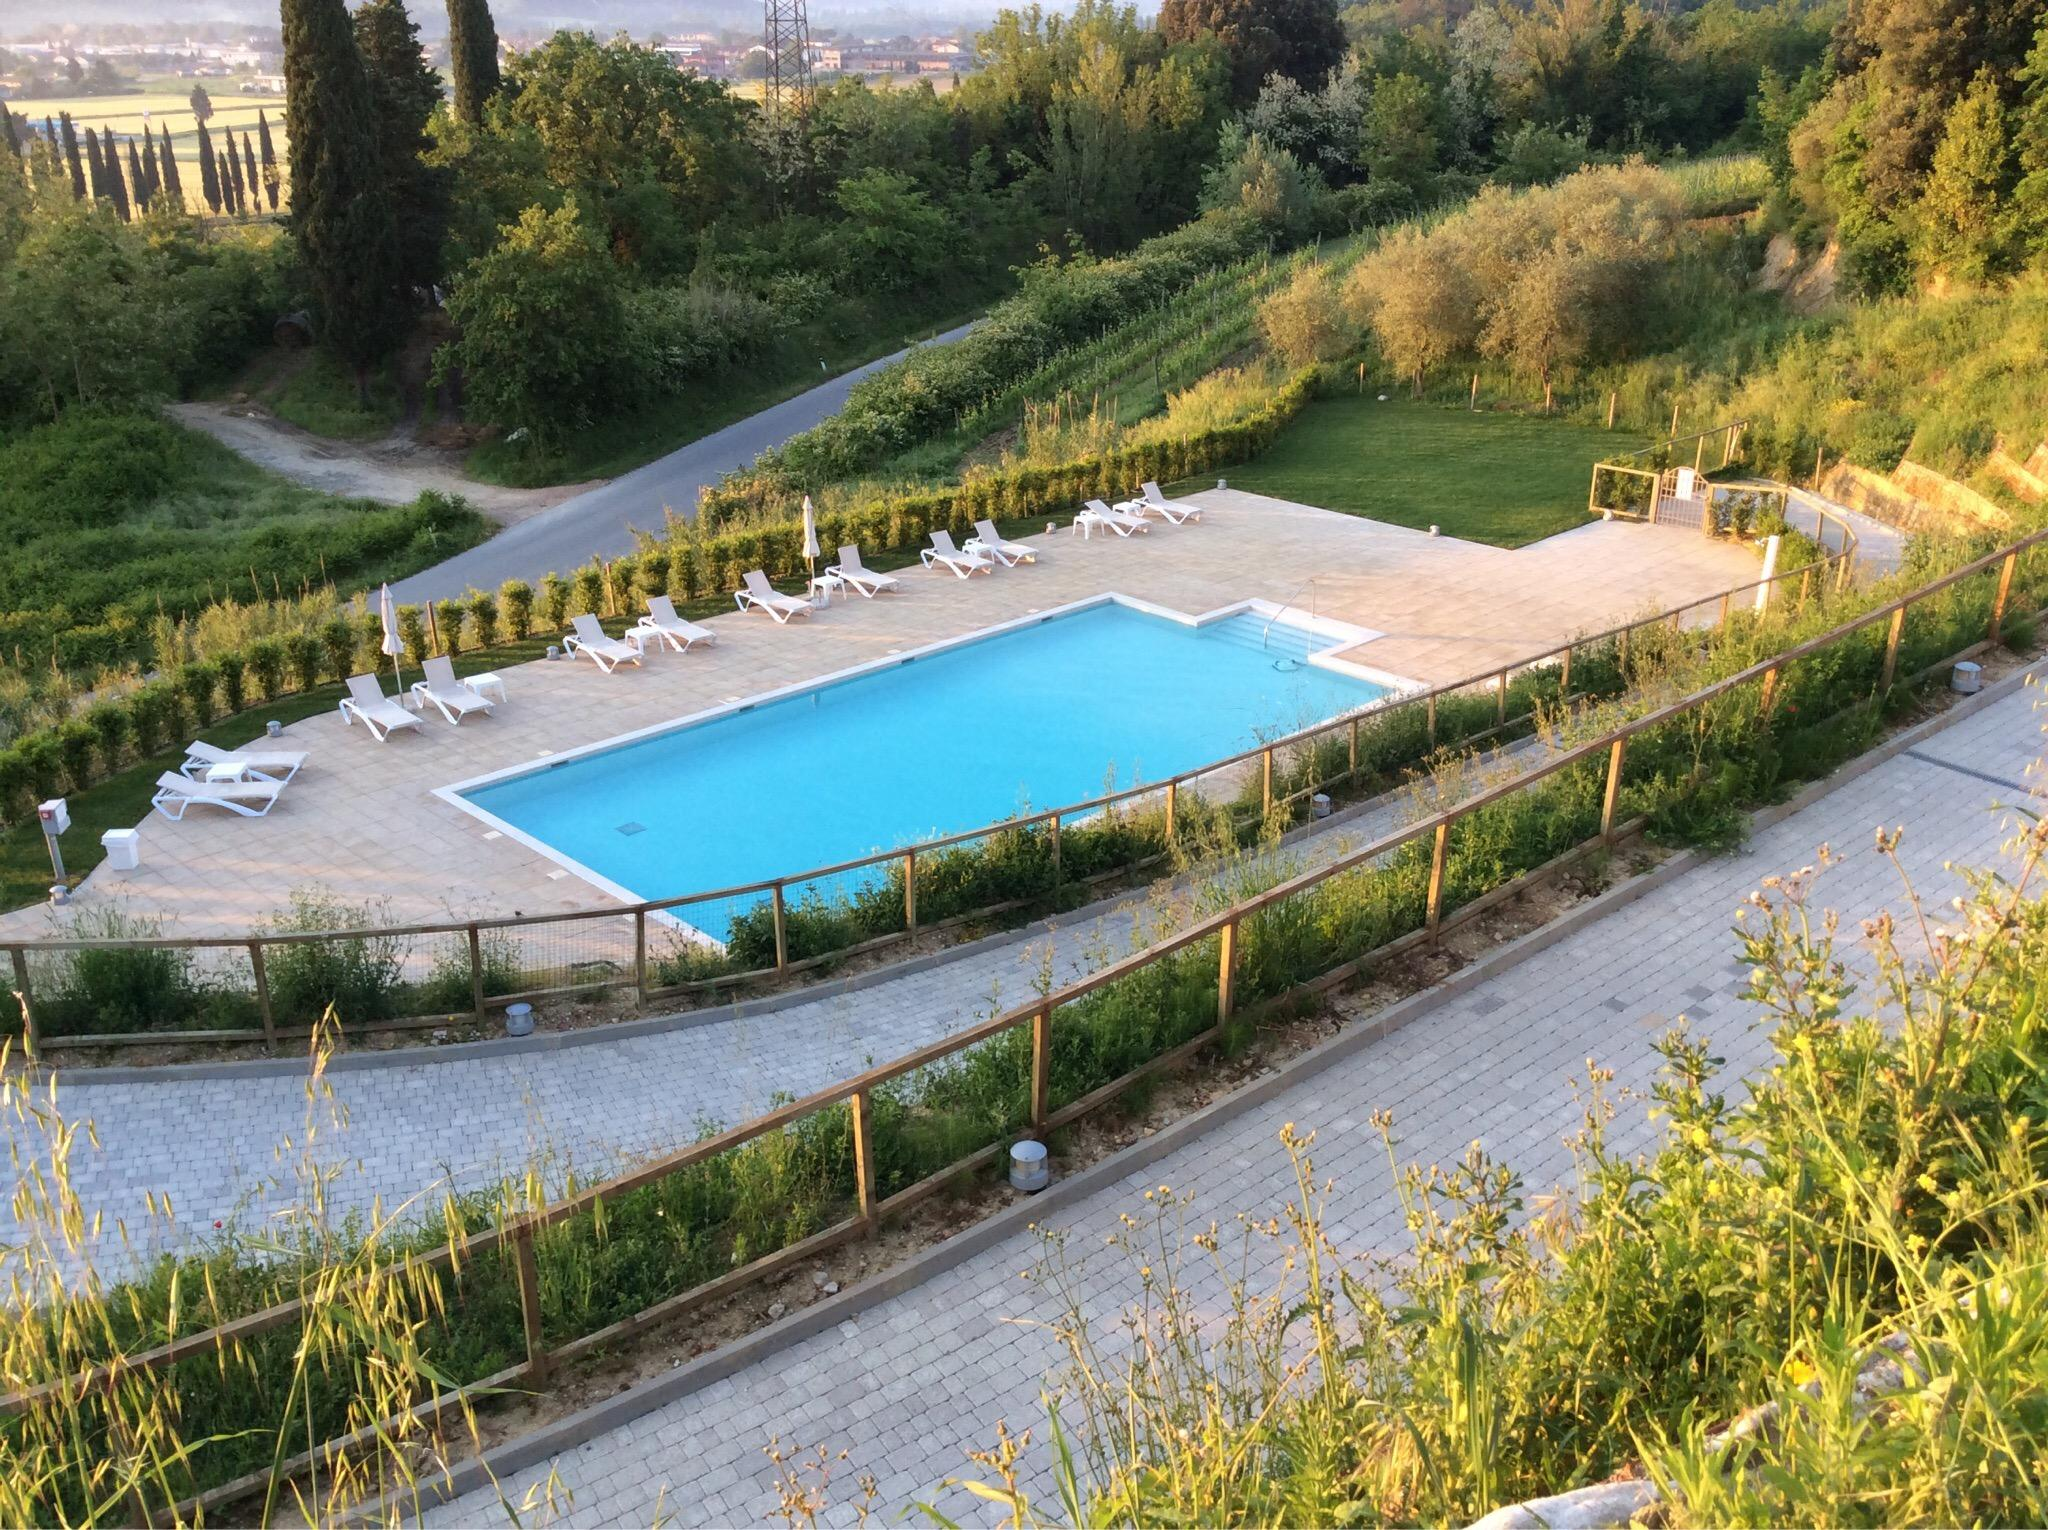 Hilton Grand Vacations Club at Borgo alle Vigne Pool